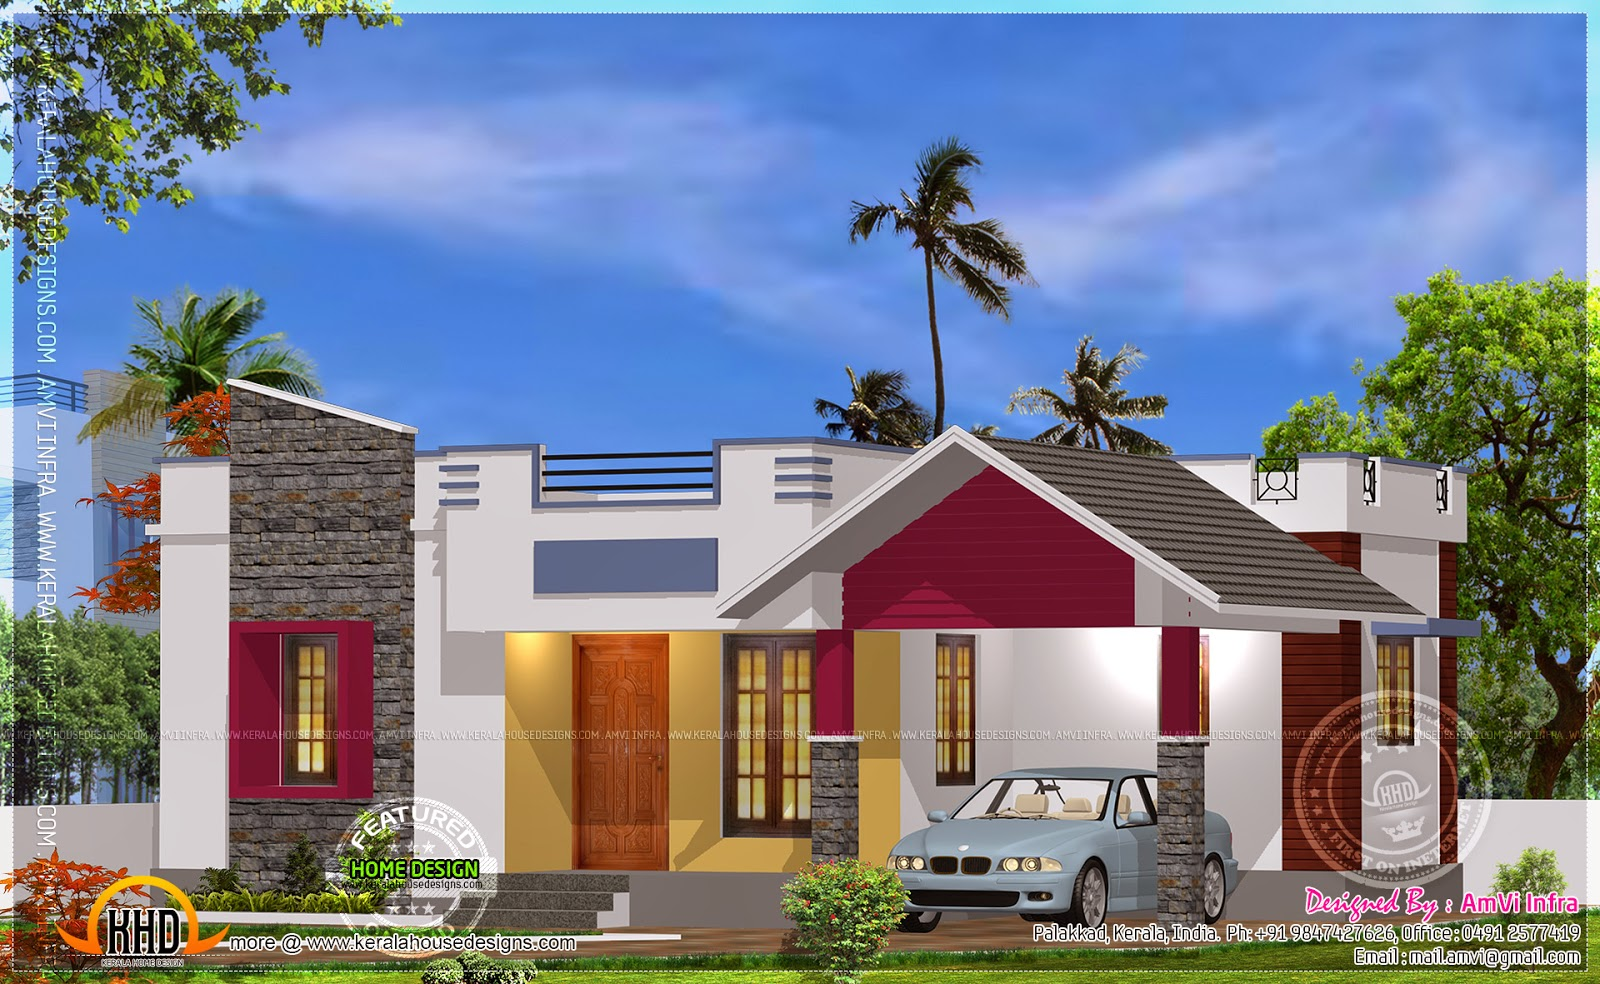 Stylish 900 sq ft new 2 bedroom kerala home design with for Home design 900 sq feet